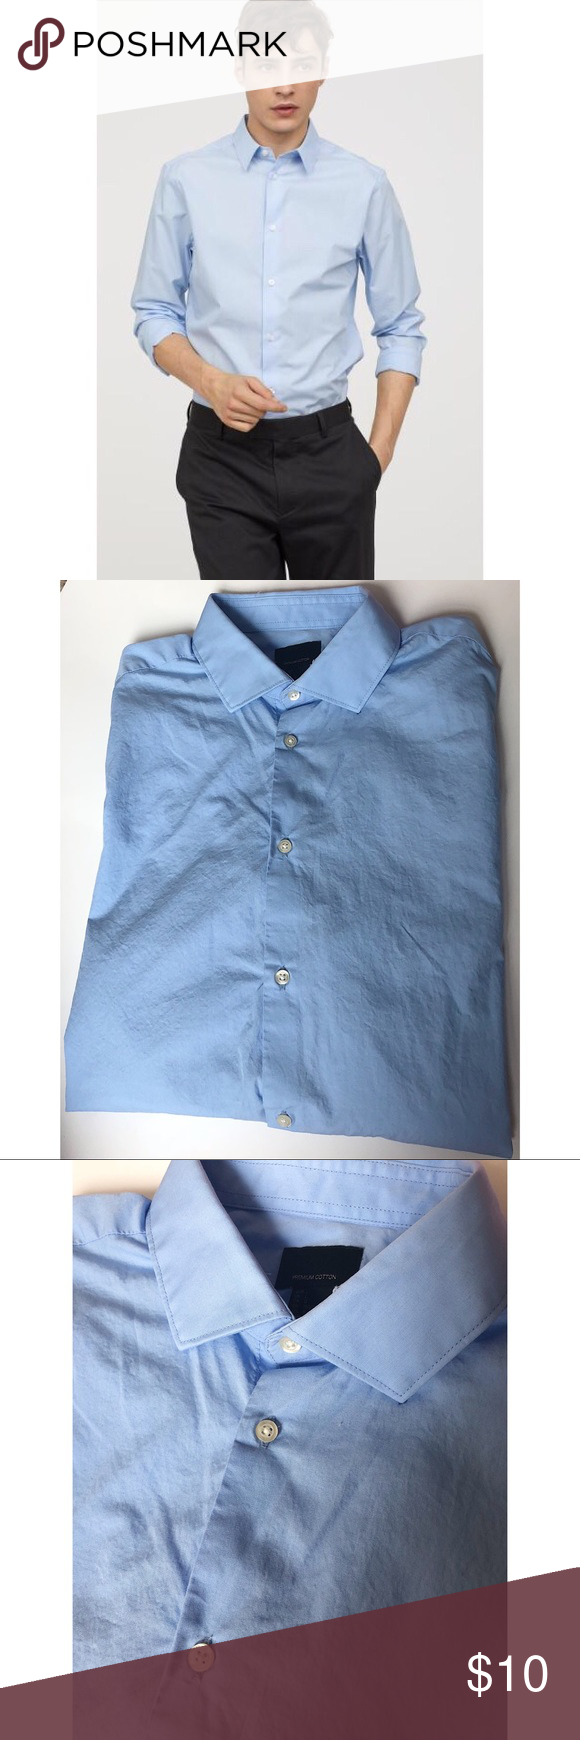 2 25 H M Men S Premium Cotton Shirt L H M Men S Premium Cotton